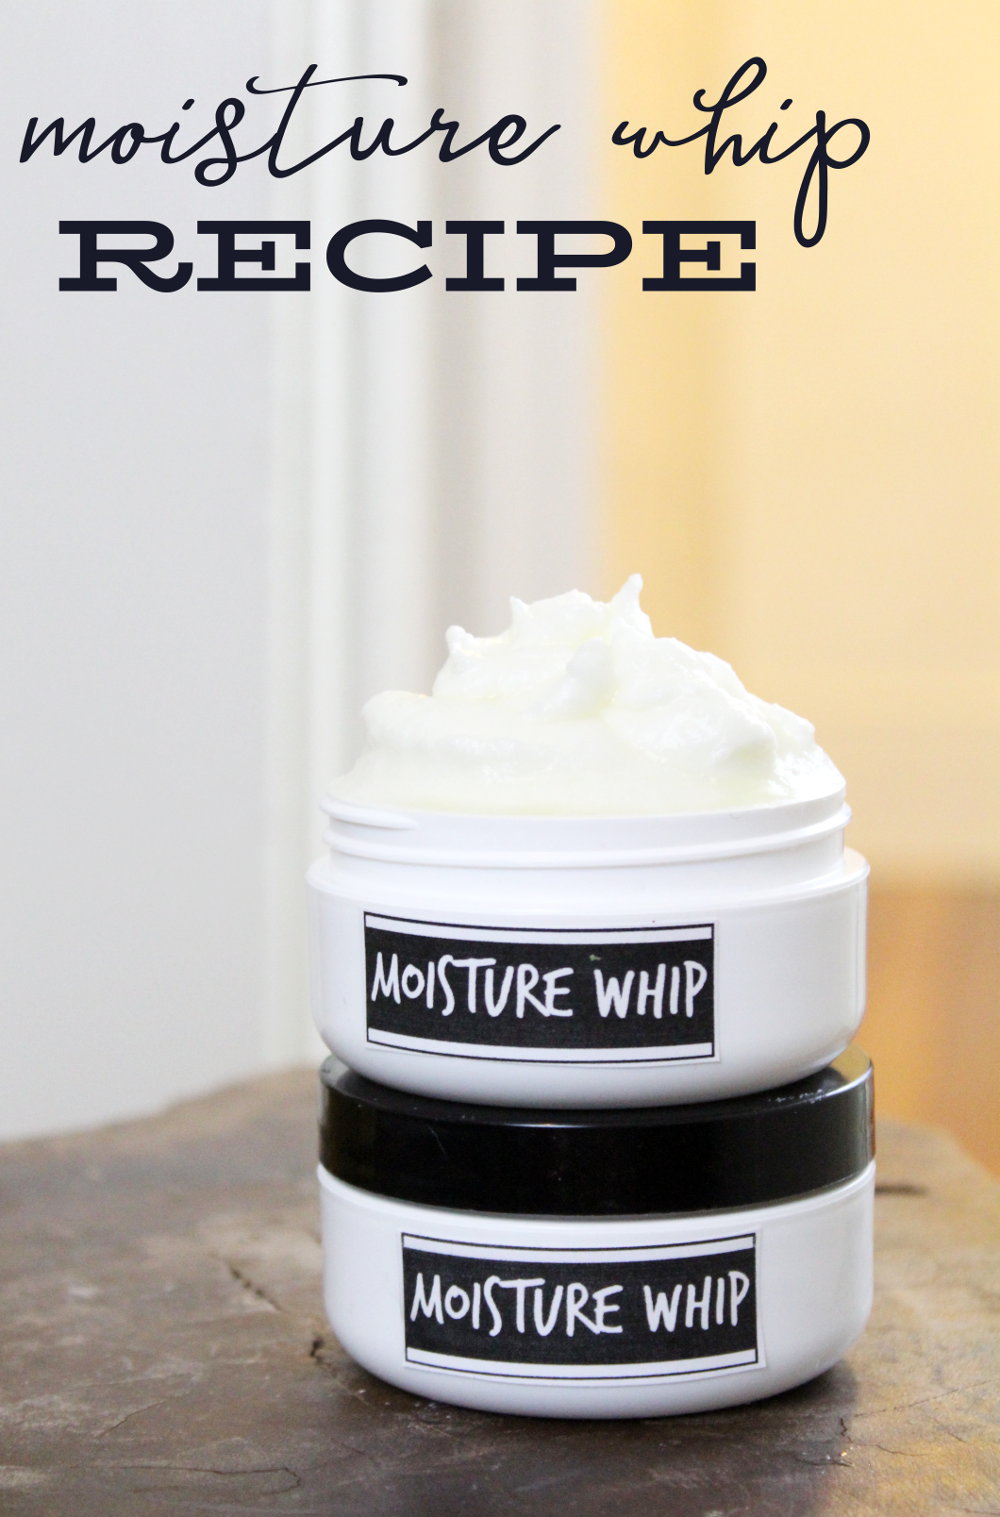 DIY Moisture Whipped Body Butter for Dry Skin! This soothing moisture whip recipe is an absolute dream for dry, parched skin. Crafted using natural ingredients, this ultra luxe moisturizer has a fluffy, cloud like texture that melts instantly into skin when applied. Skin soothing butters, aloe vera and witch hazel extract offer rich moisture that promotes skin health while a calming essential oil blend lends its aromatherapeutic properties. #moisturewhip #bodybutter #whippedbodybutter #diy